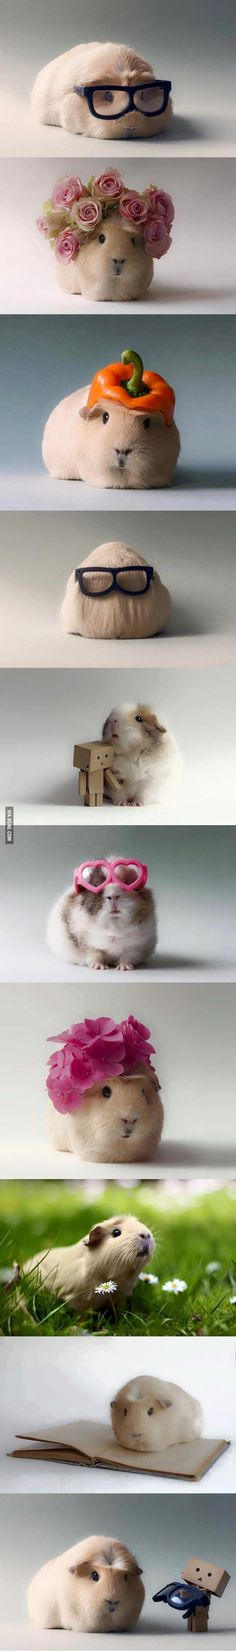 Hamsters with things on their heads! Having a bad day? These floofs will help you cheer up! Cute Funny Animals, Funny Animal Pictures, Cute Baby Animals, Animals And Pets, Cute Pictures, Funny Dogs, Bizarre Pictures, Happy Pictures, 9gag Funny